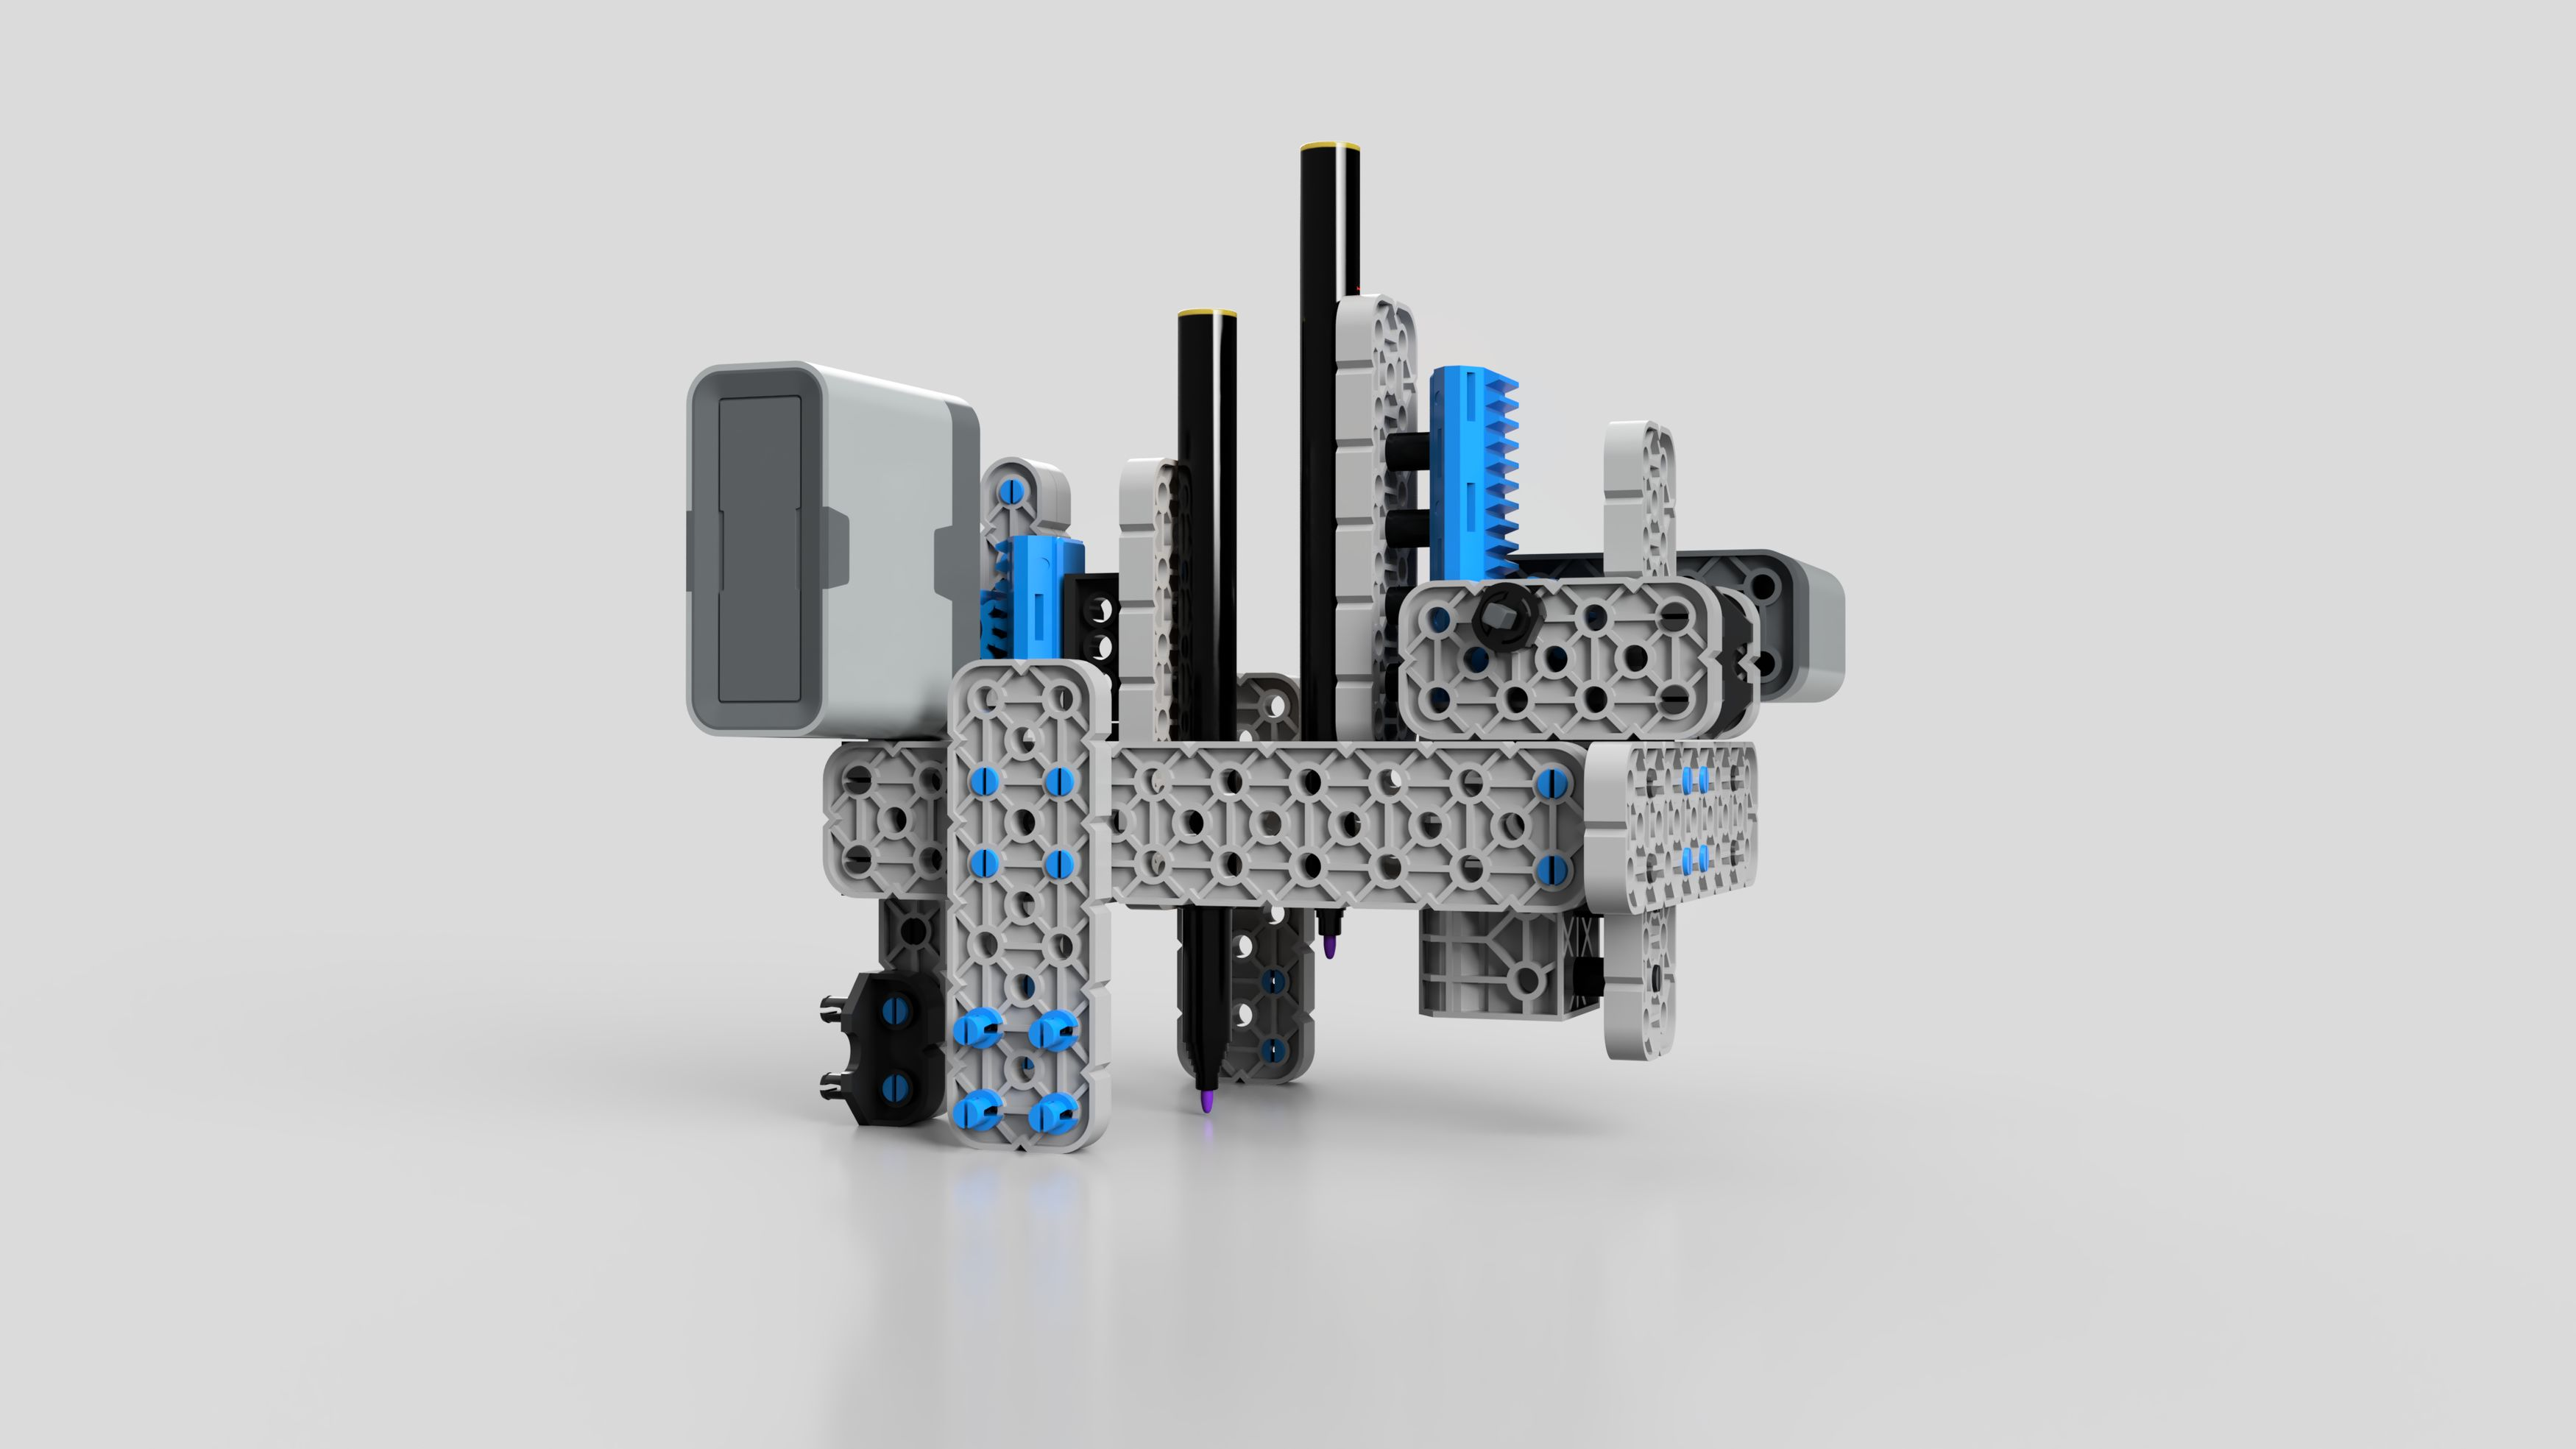 Robotic-pen-vex-iq---vexcode-v2-0-2020-may-24-04-40-14pm-000-customizedview17912336115-png-3500-3500